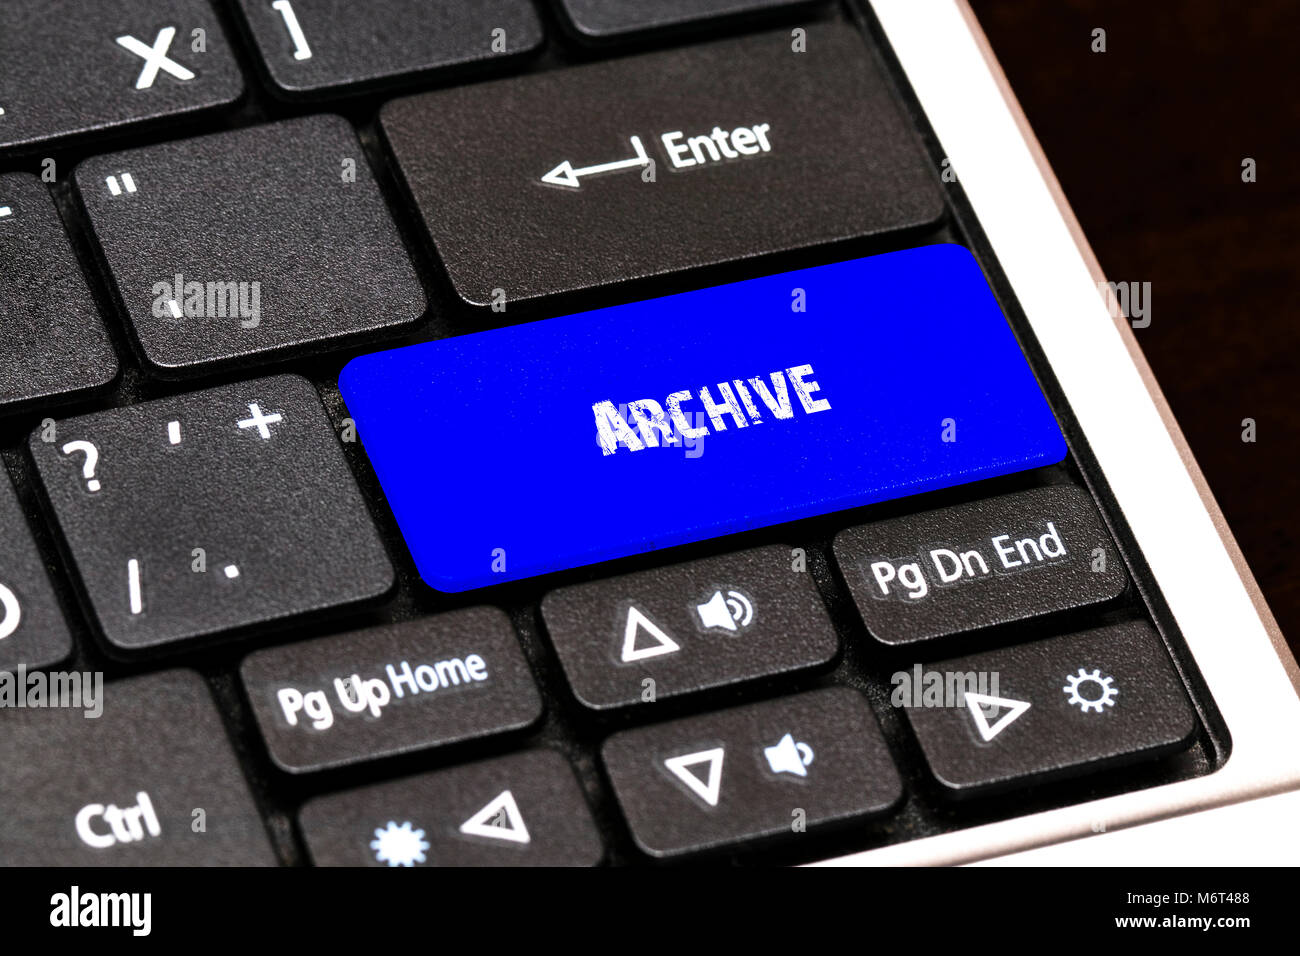 Business Concept - Blue Archive Button on Slim. Stock Photo